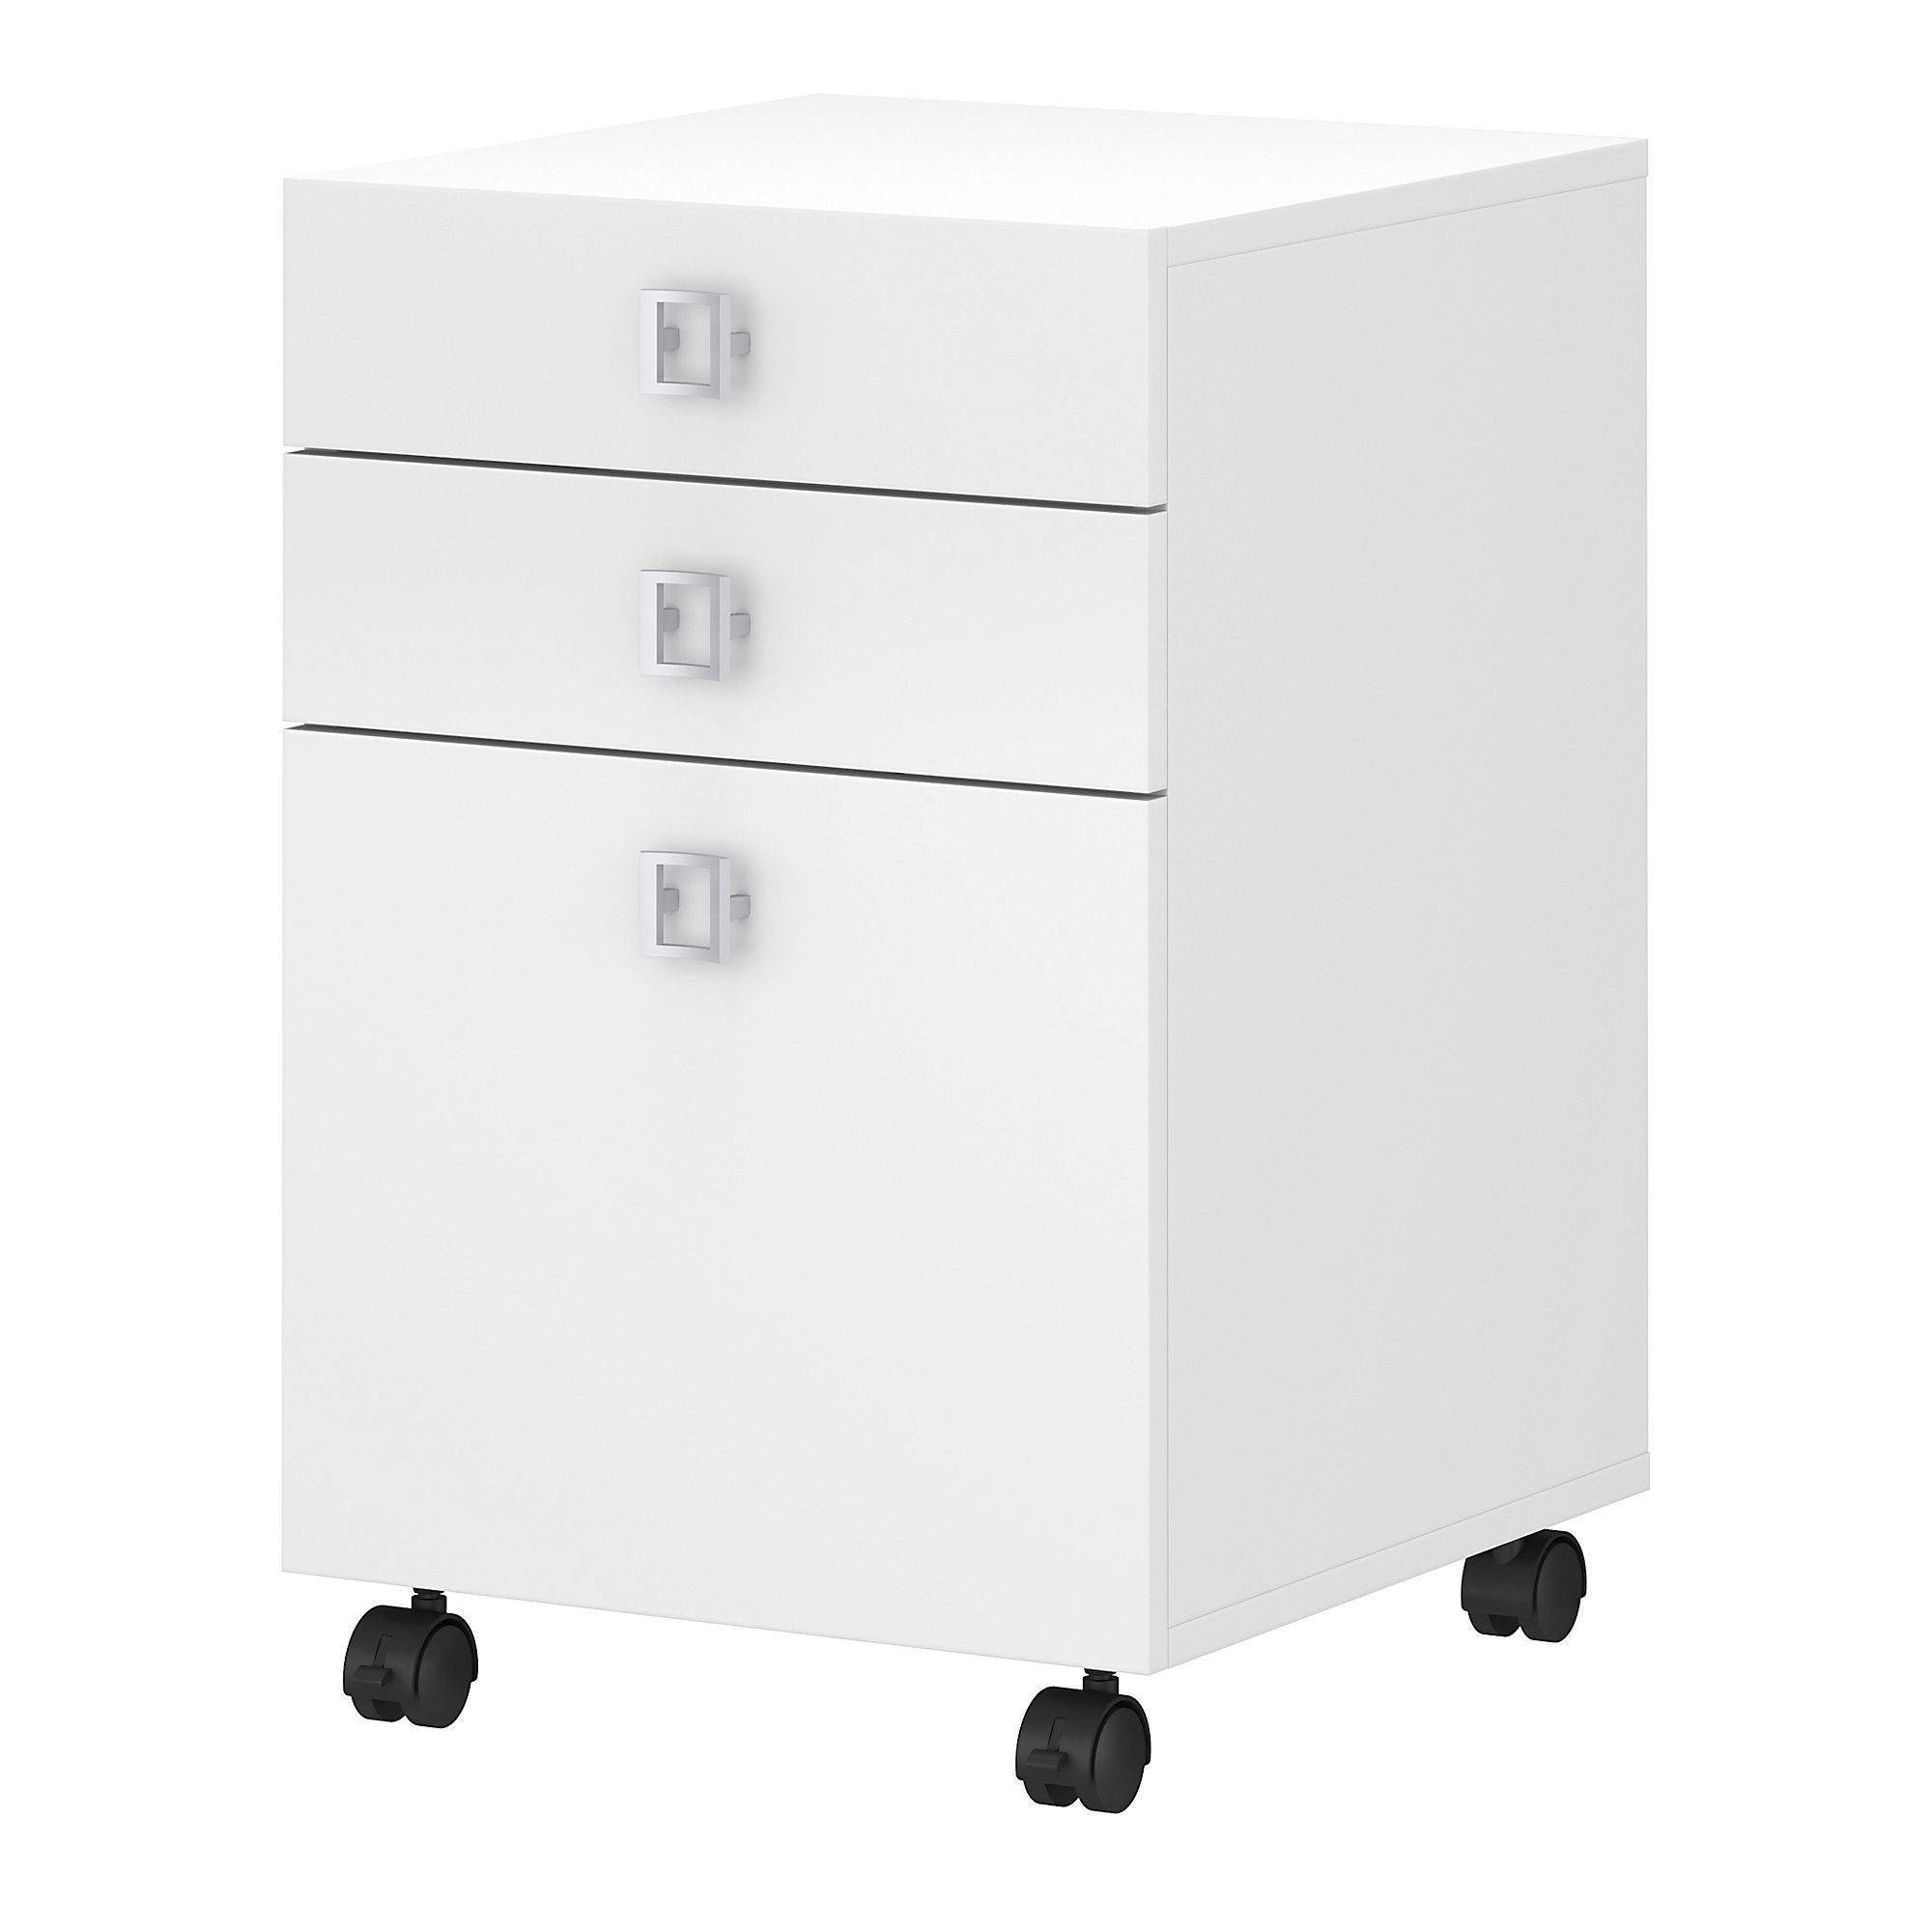 Office by kathy ireland Echo 3 Drawer Mobile File Cabinet in Pure White by Office by kathy ireland